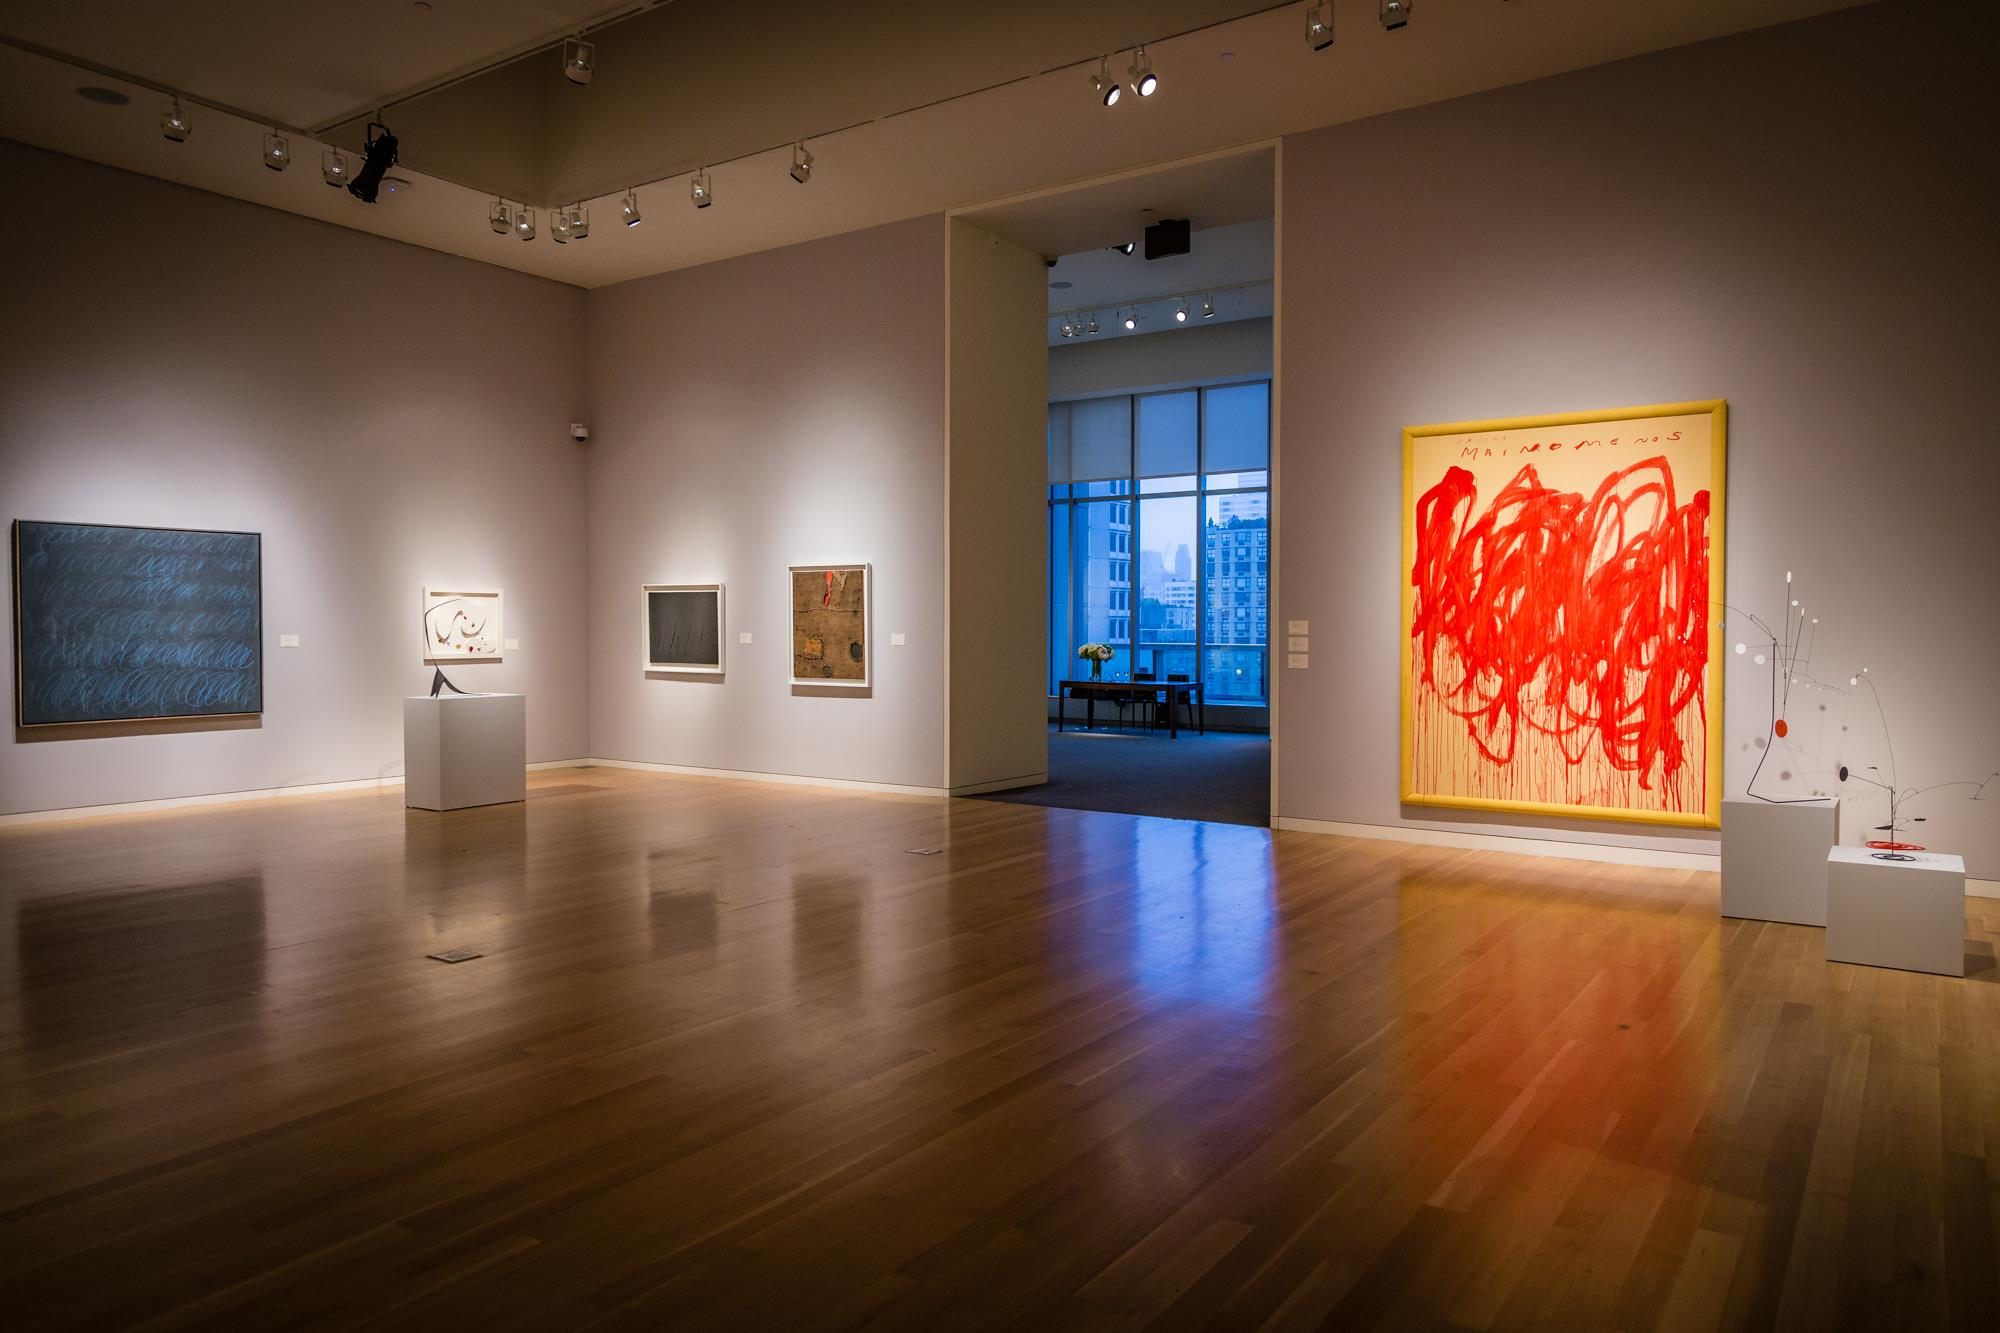 Sotheby's Auction Art Gallery - Sotheby's Auction House